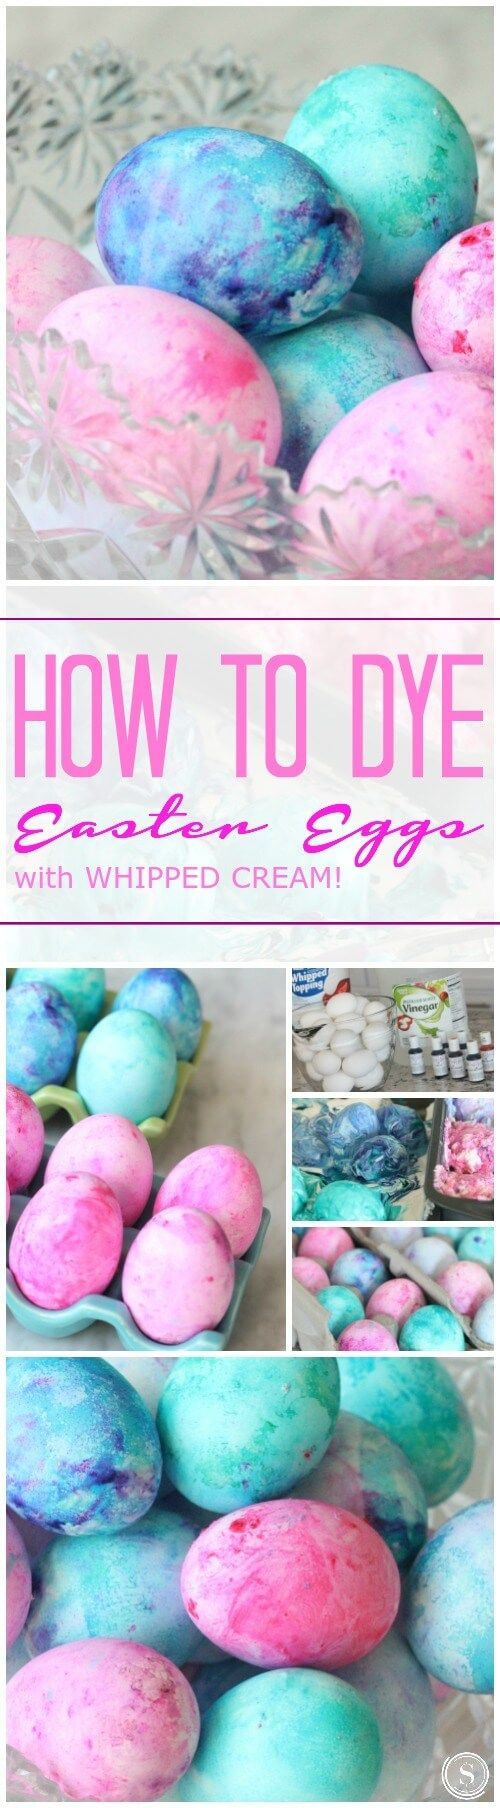 How To Dye Easter Eggs With Whipped Cream This Is A Great